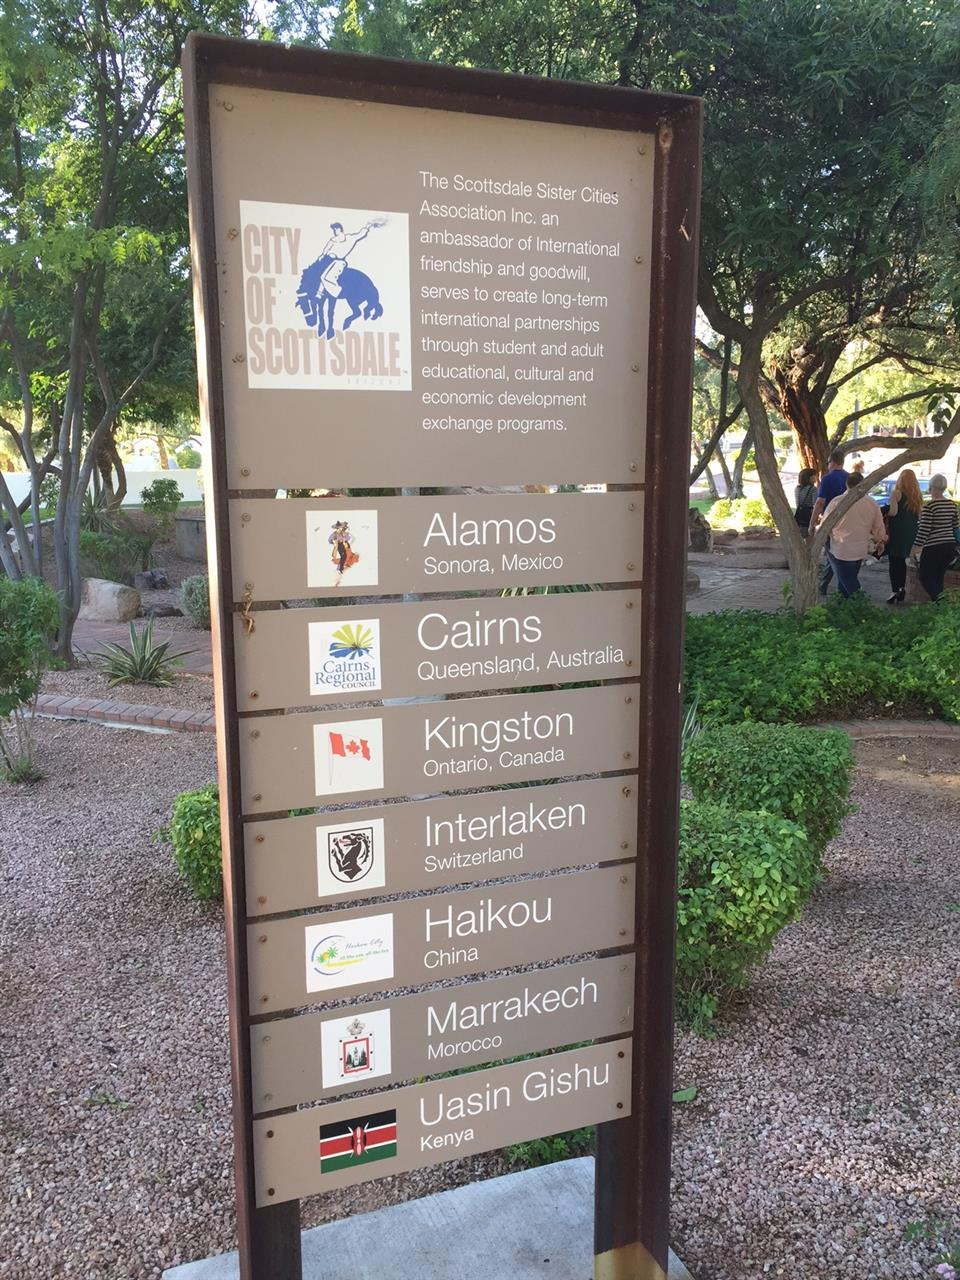 Scottsdale Sister Cities